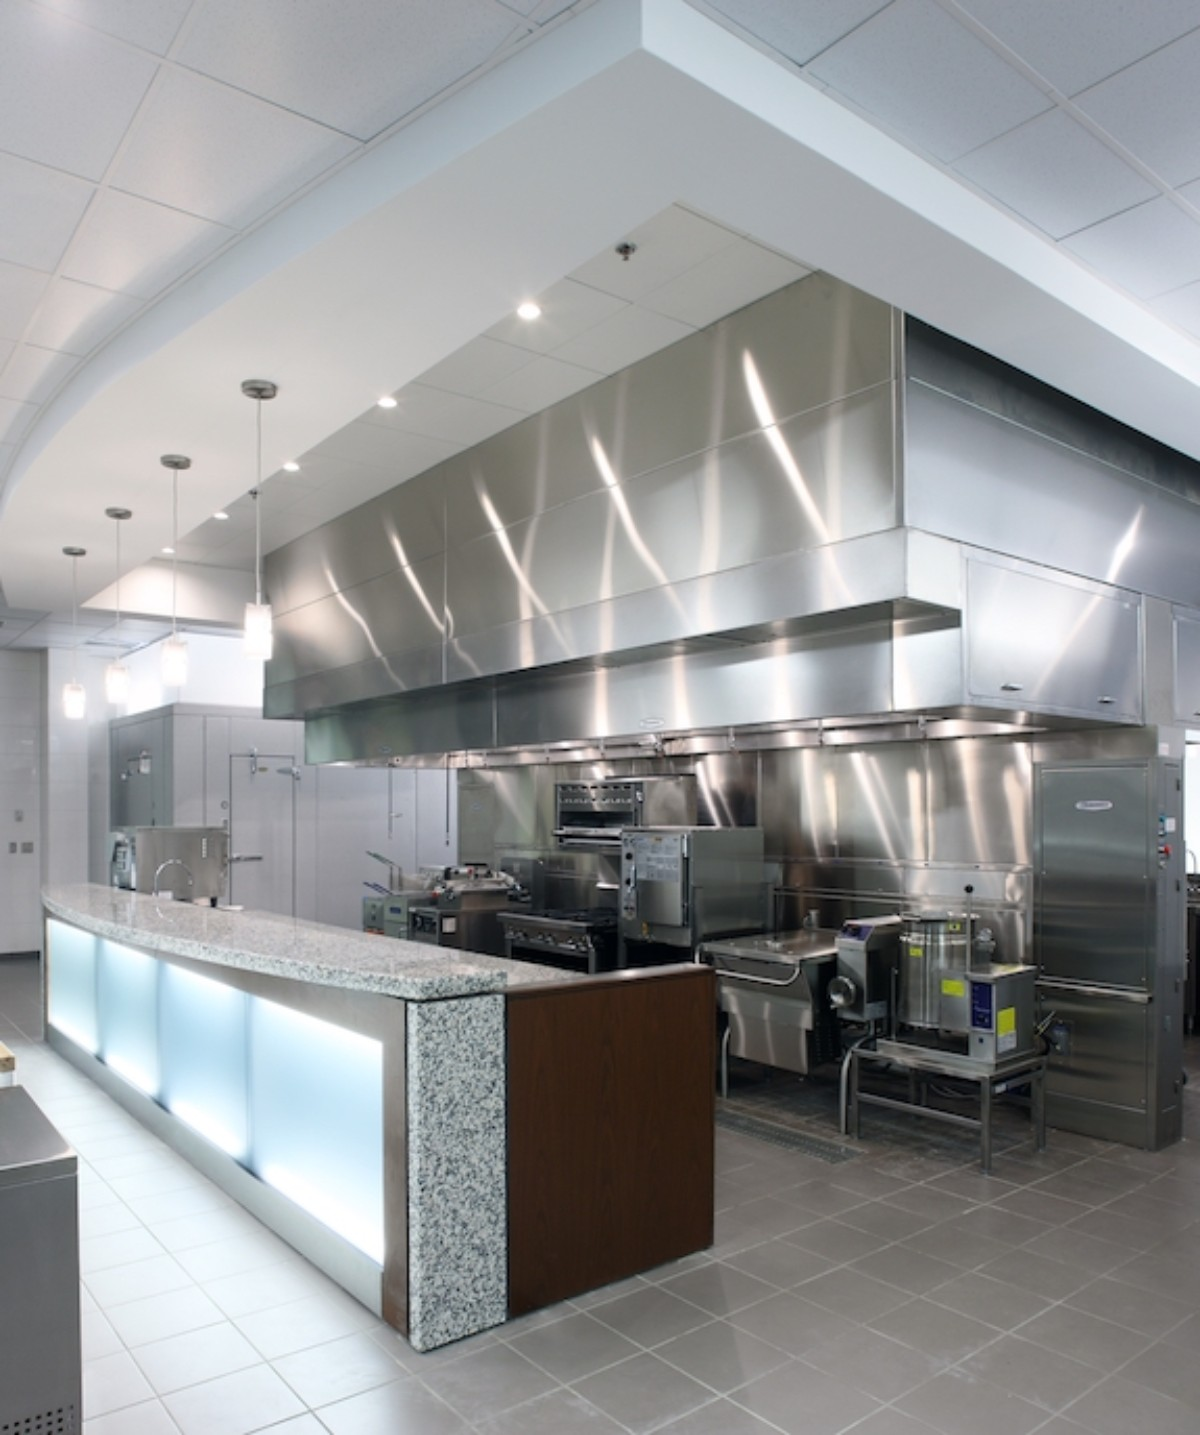 Kitchen Design Store Knoxville Tn Knoxville